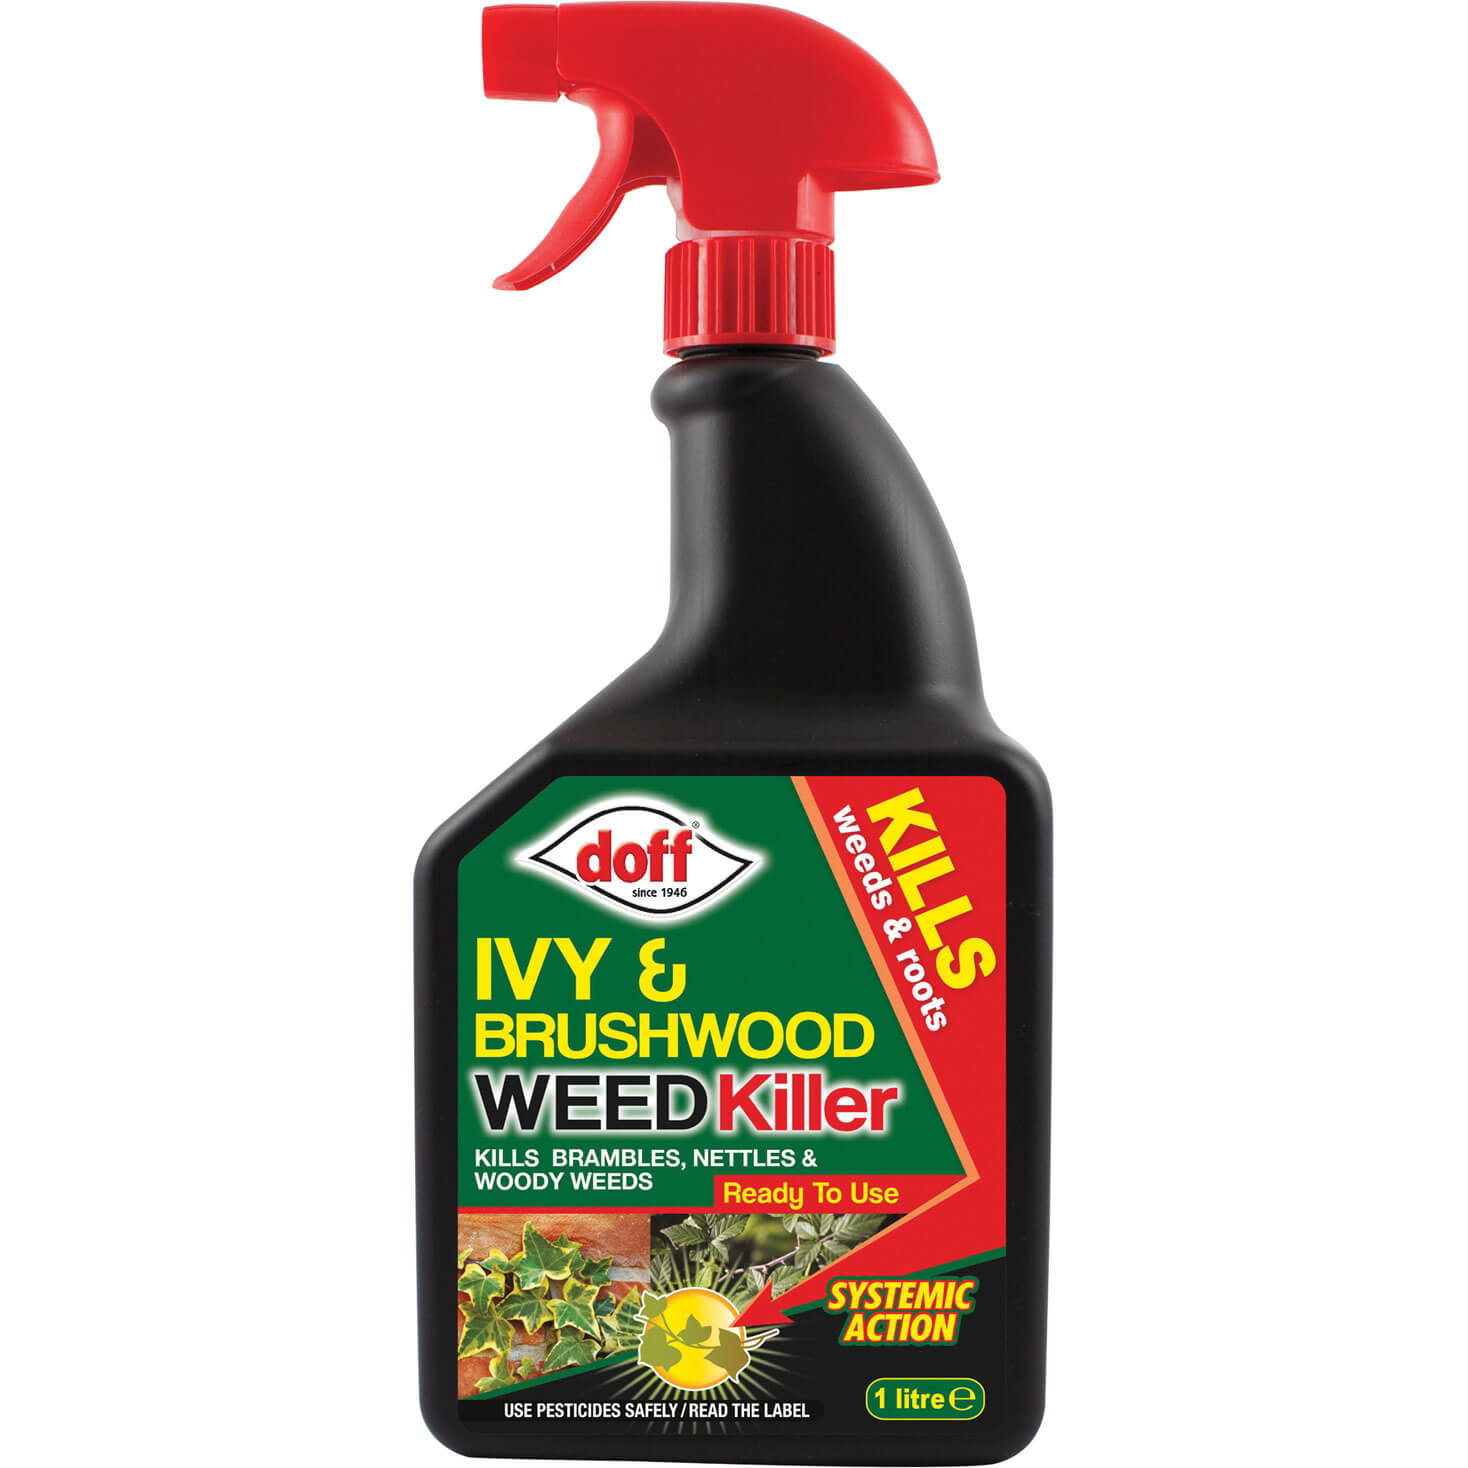 Doff Ivy & Brushwood Weed Killer 1L